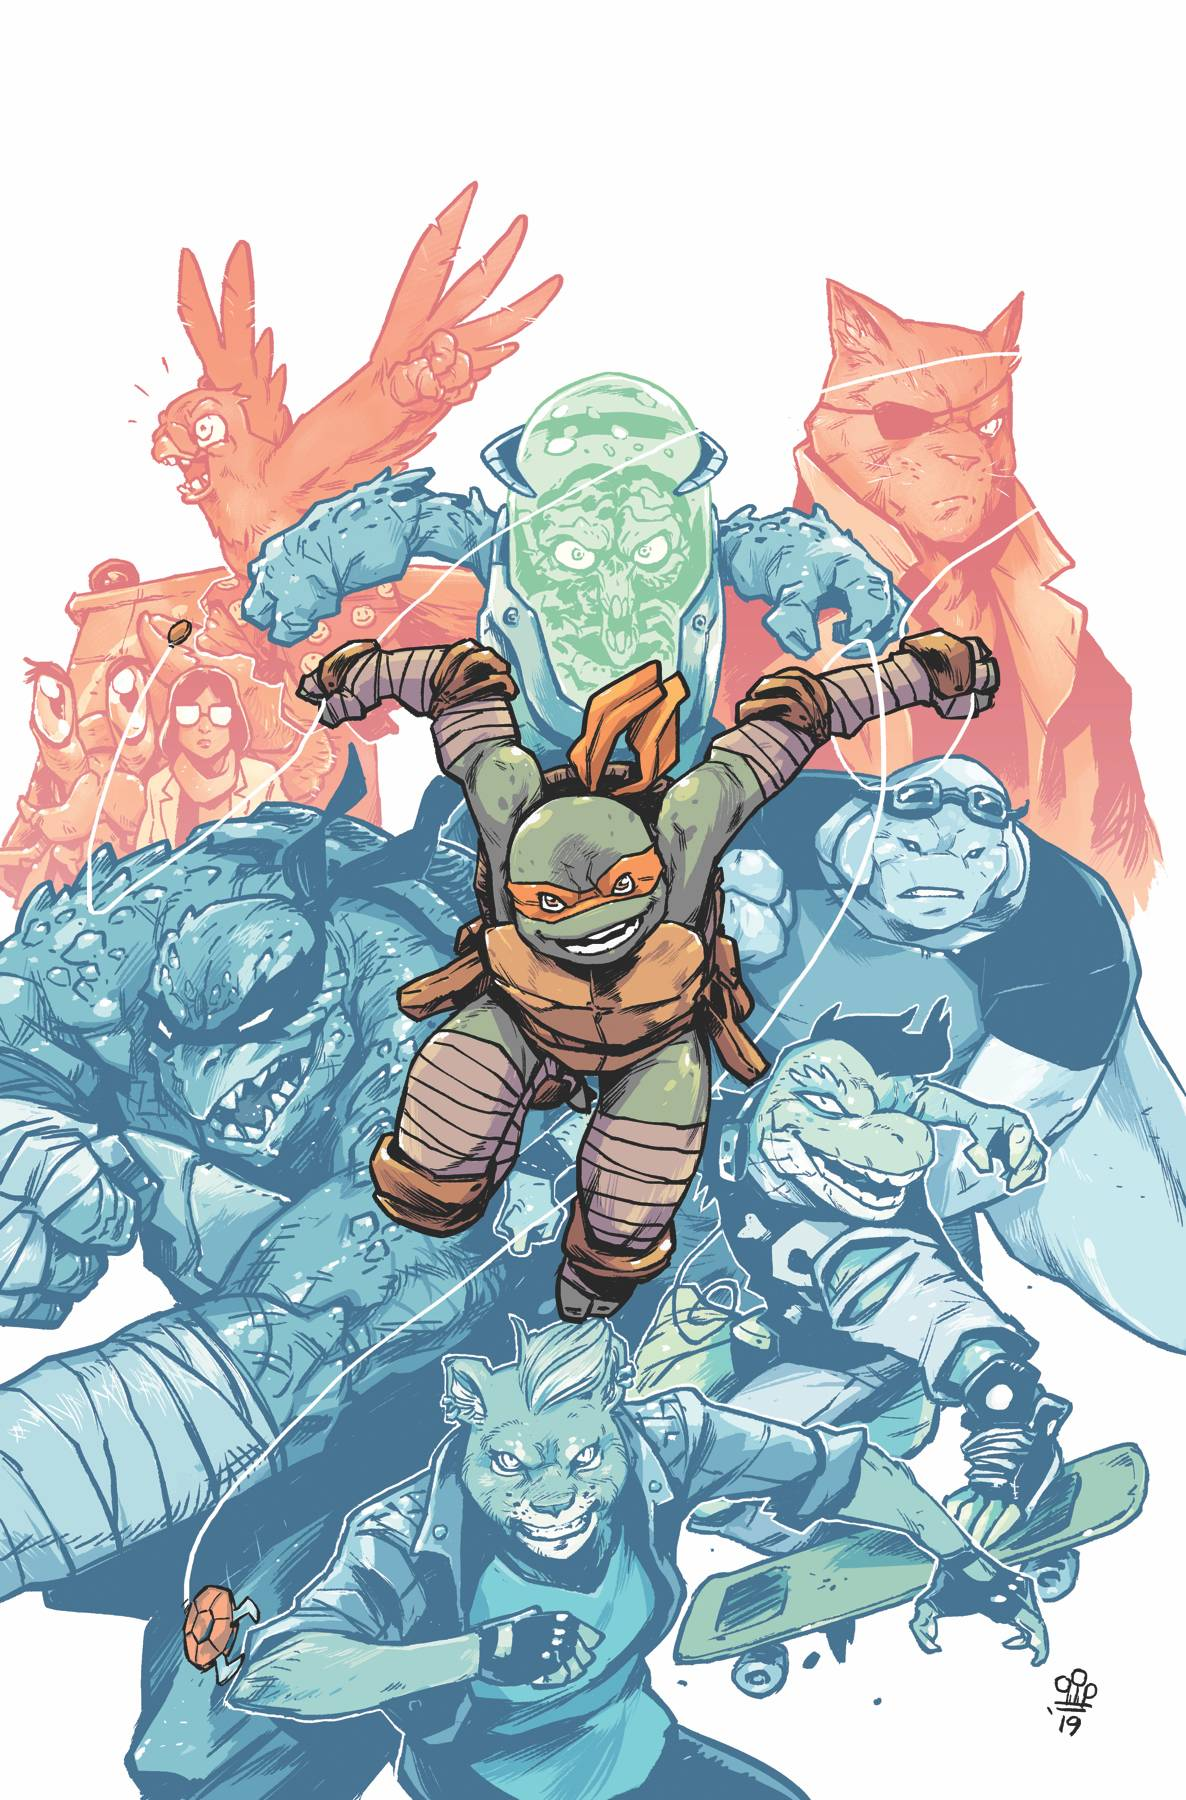 TMNT ONGOING 98 10 COPY INCV DIALYNAS.jpg